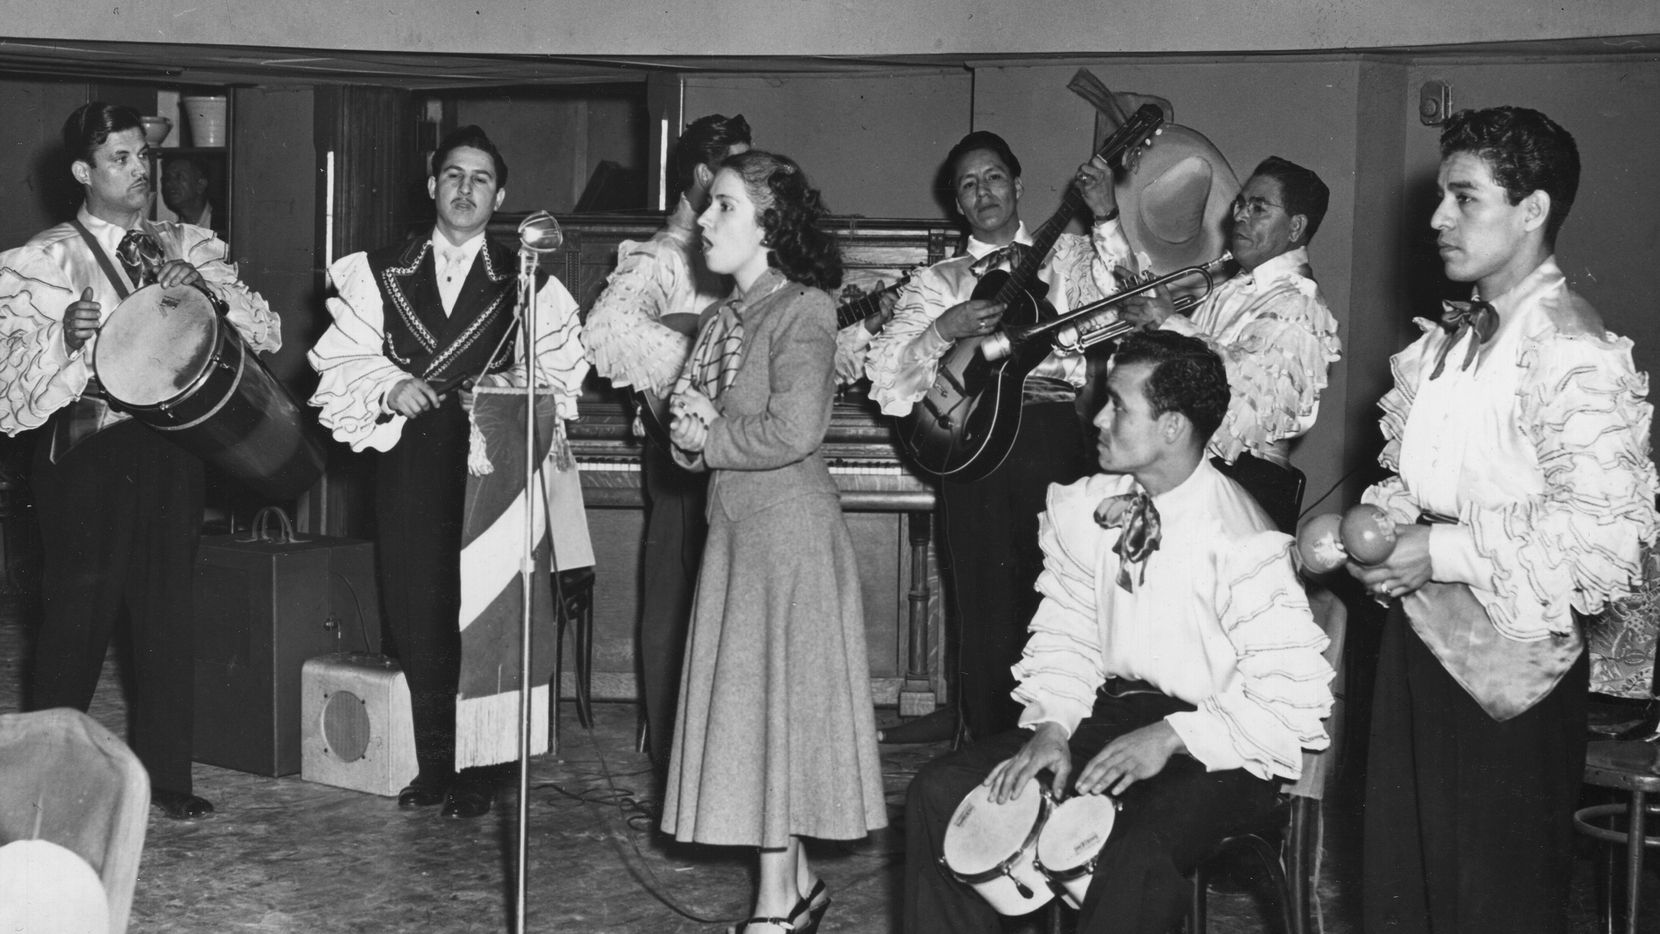 The Joe Azcona Band was a well-known in the area in the 1940s. The group performed at locations including  hotels and the El Fenix ballroom.